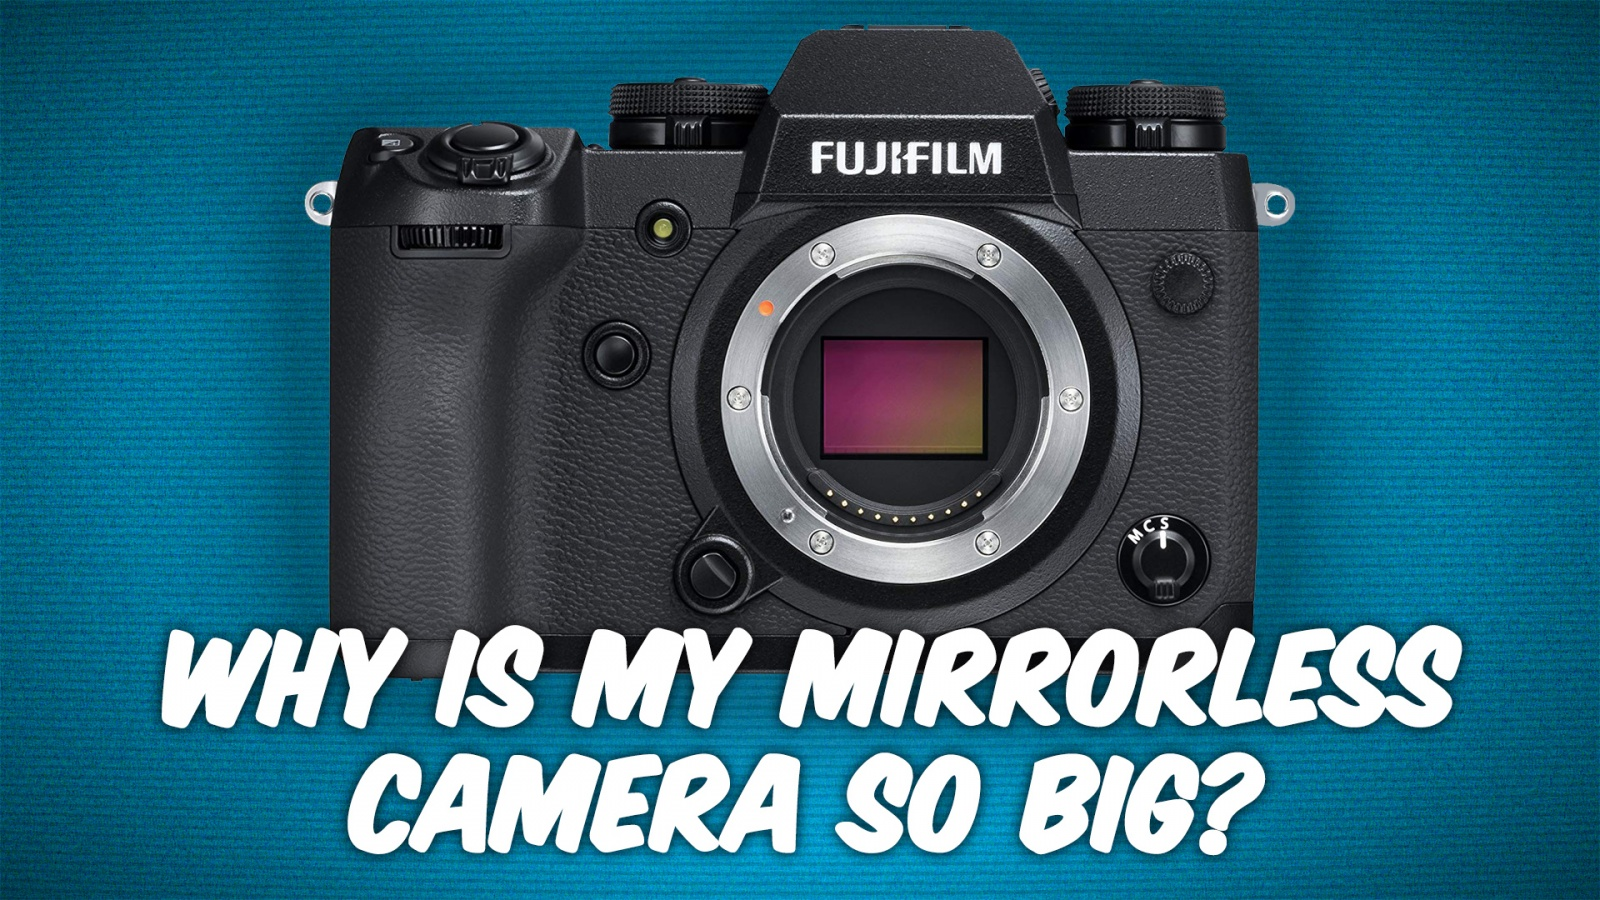 Ask The Tech Guy 8 Why Is the Fujifilm X-H1 so Large for a Mirrorless Camera? | TWiT.TV